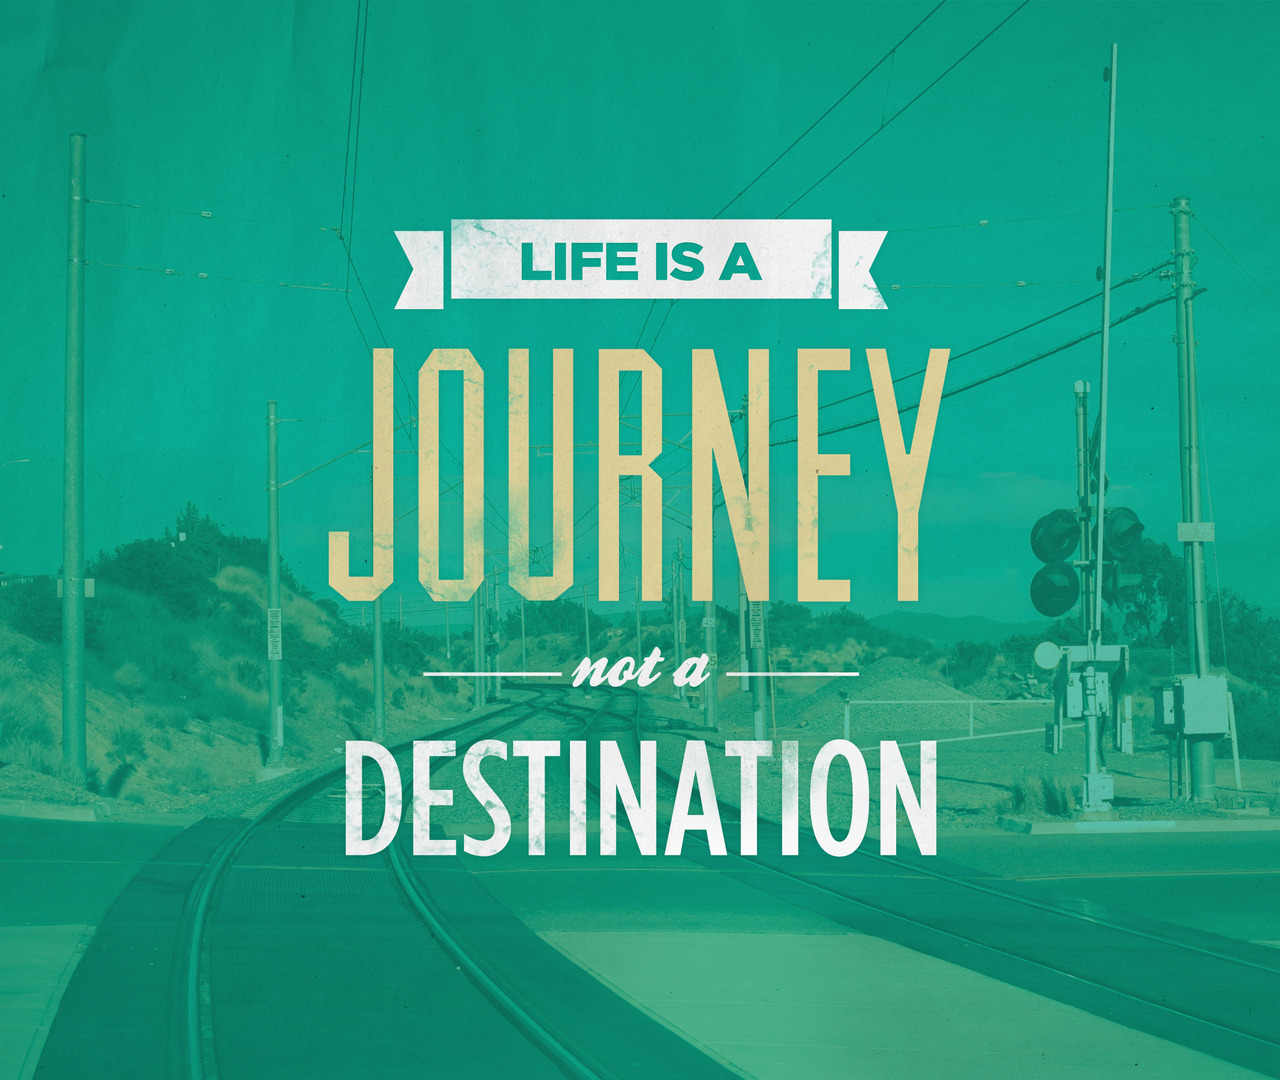 essay 4 life is a journey 5 books that changed my life essay how i spend my summer vacation 374 february (1) jawaharlal nehru essay (4) journey by bus (4.